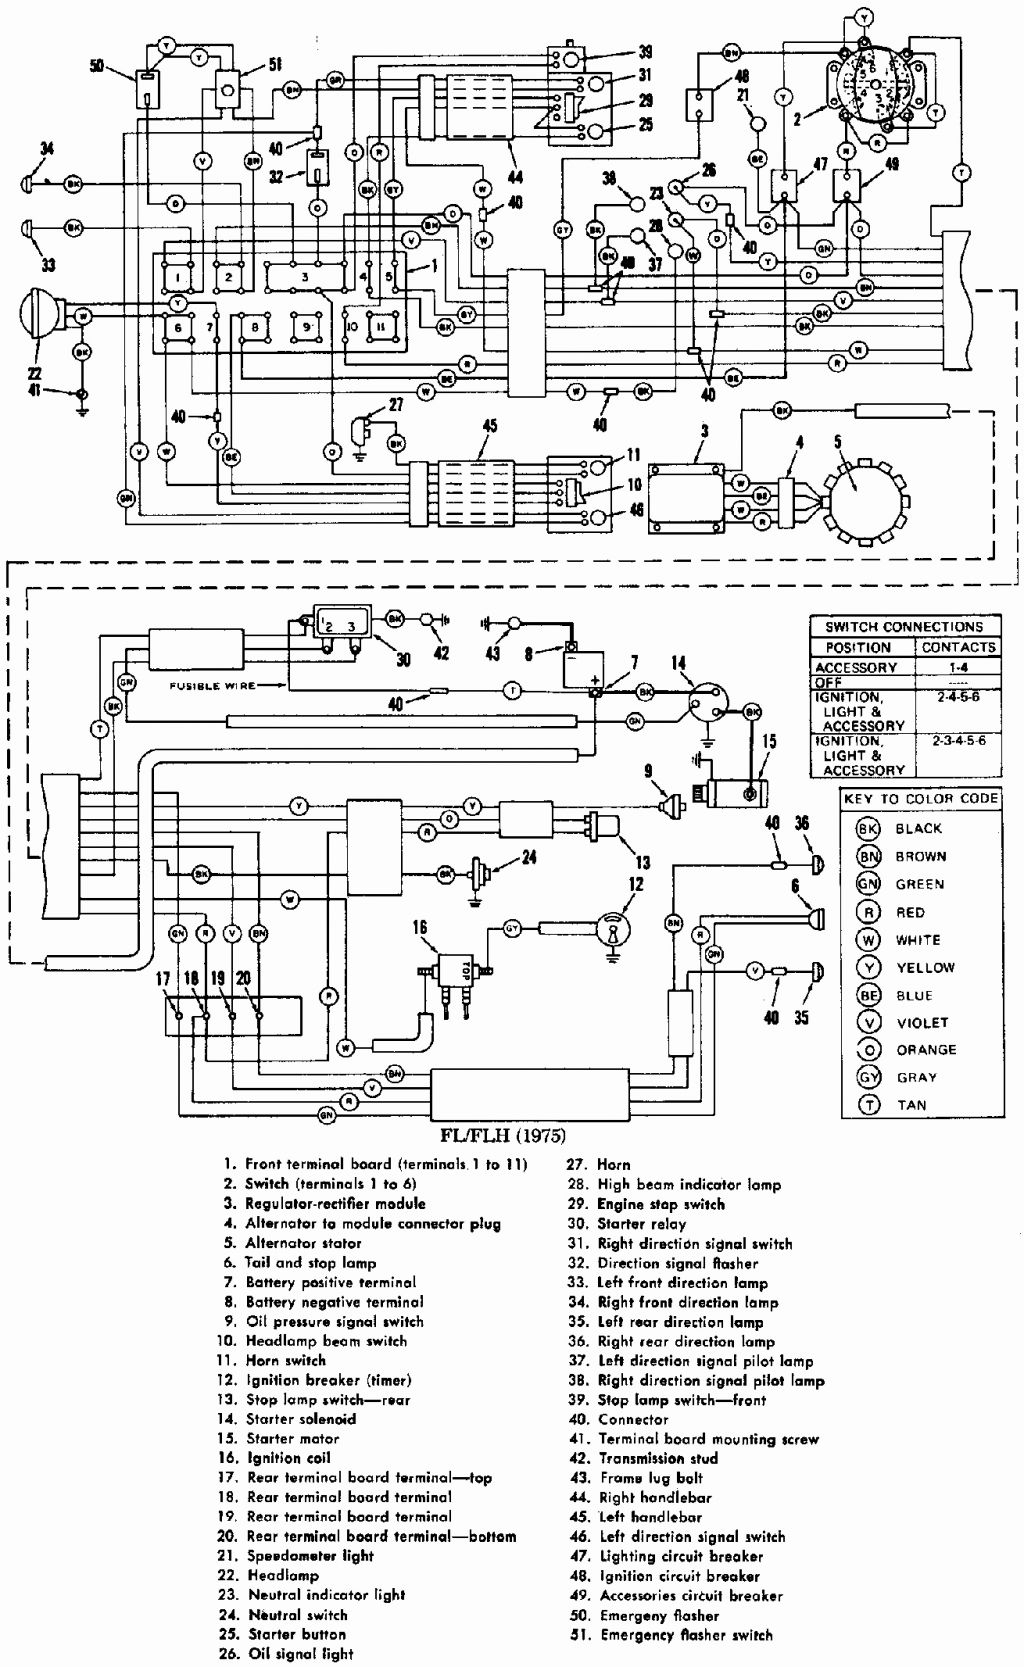 Harley Davidson Fxr Wiring Diagram For 1990 - Wiring Diagram ... on